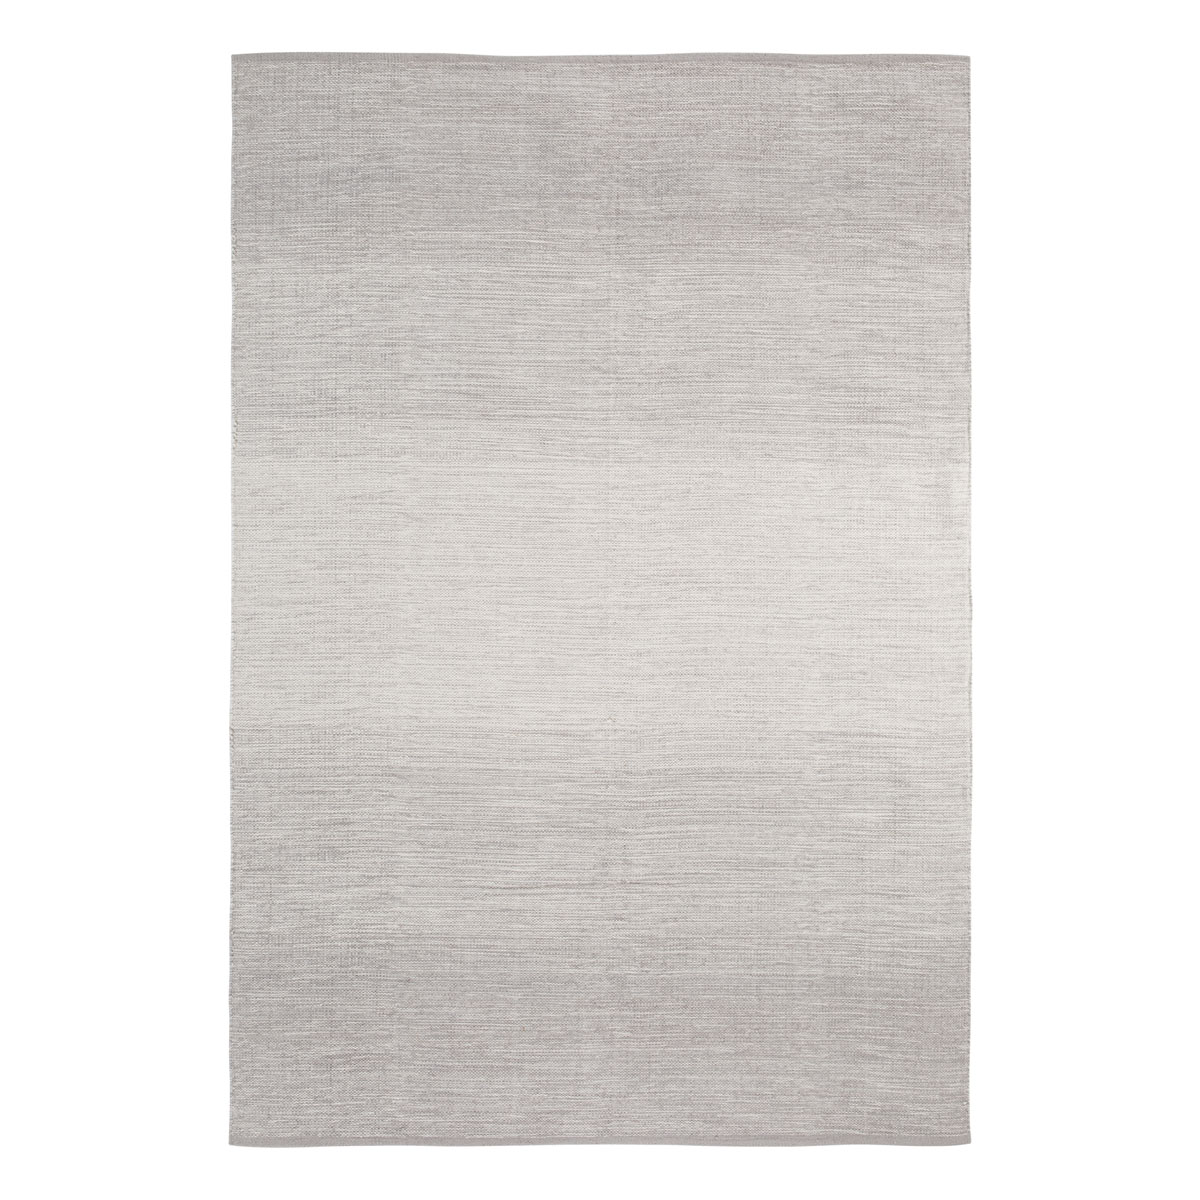 """Teppich """"Opland"""" 60x120 cm, light-taupe  light taupe"""